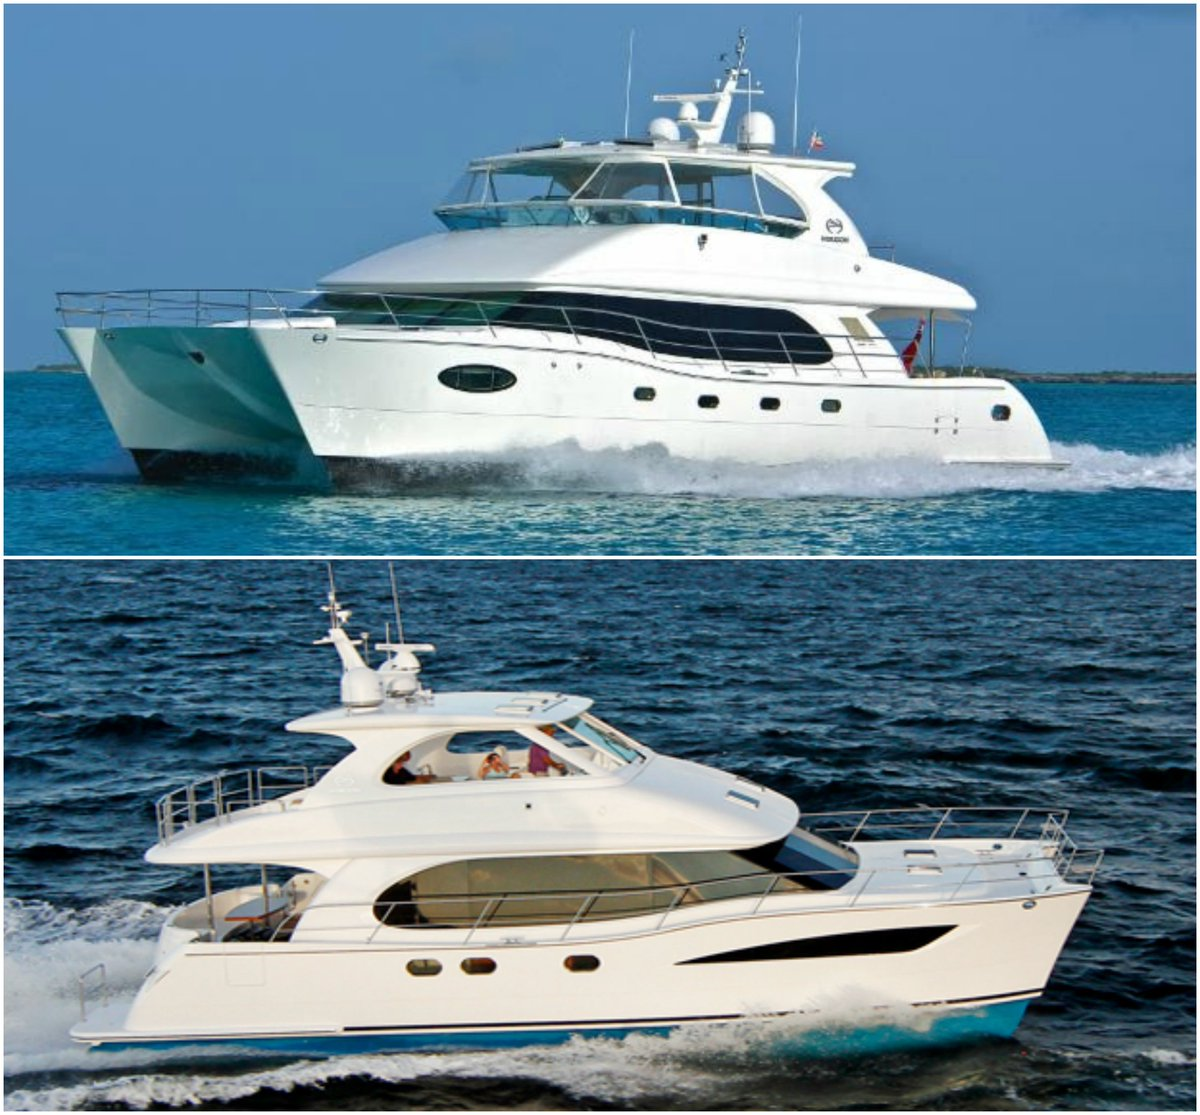 Join us at the 56th annual Fort Lauderdale Int'l Boat Show Nov. 5-9! 2 PC60's & a PC52 power cat will be on display! https://t.co/3qCggzHpxw